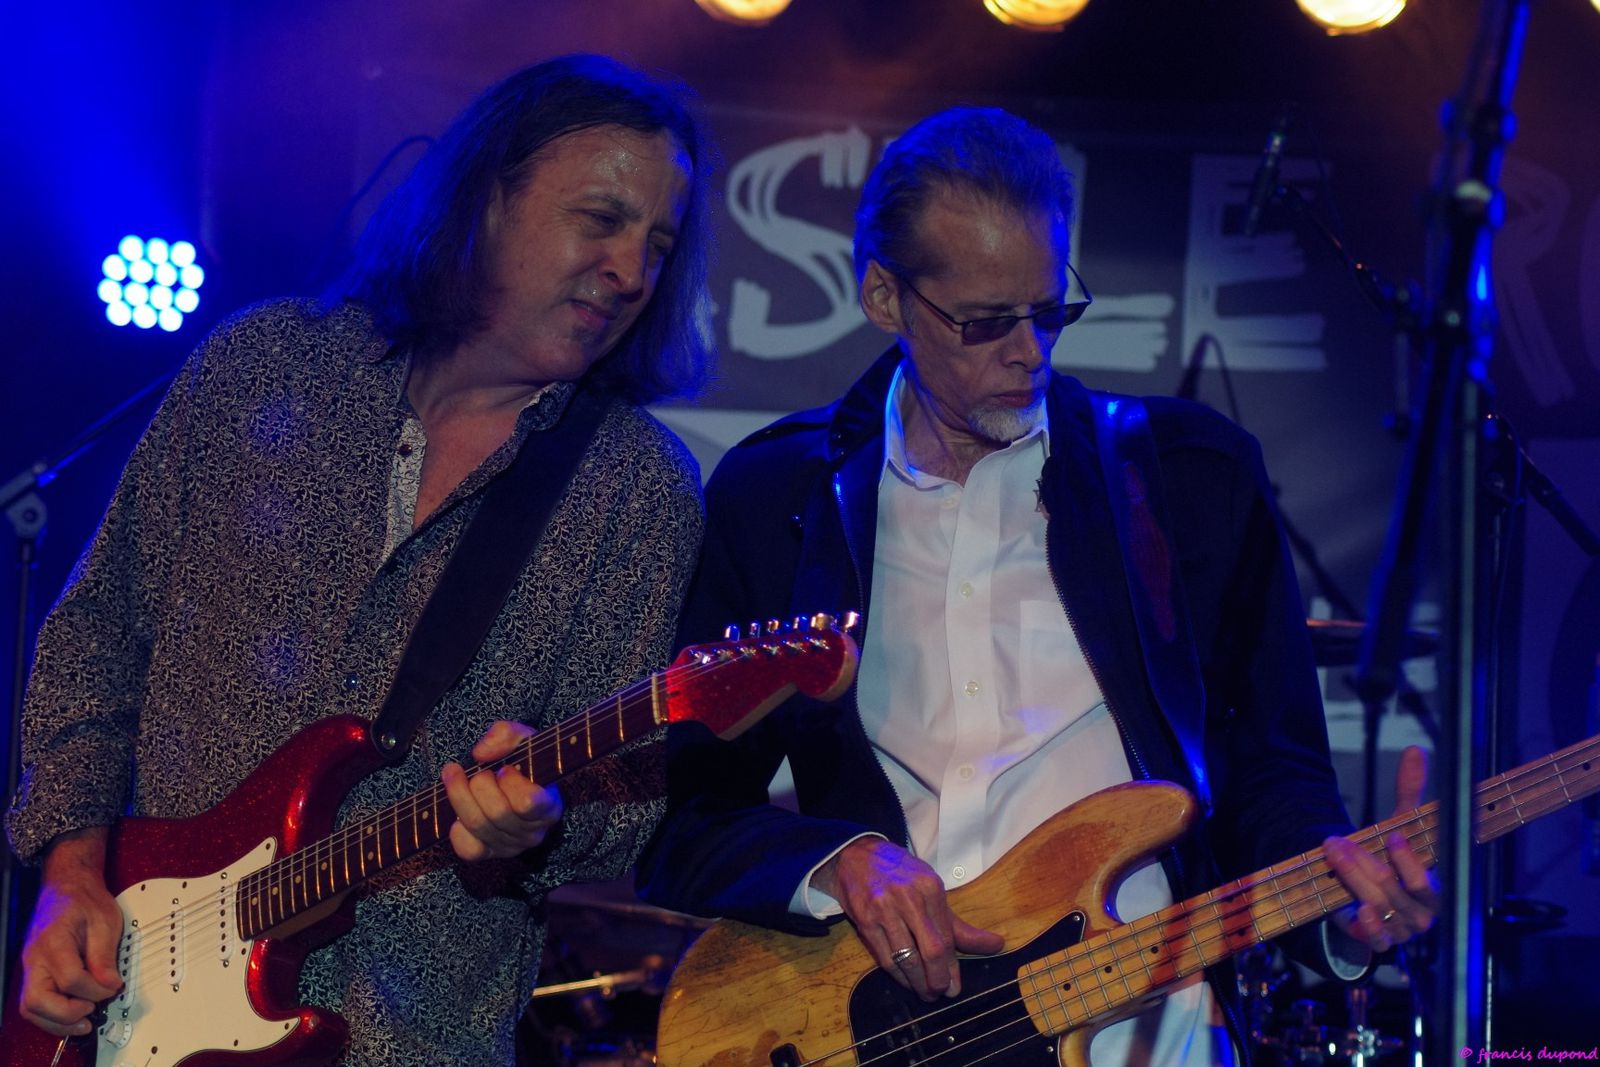 Jim Suhler & Monkey Beat